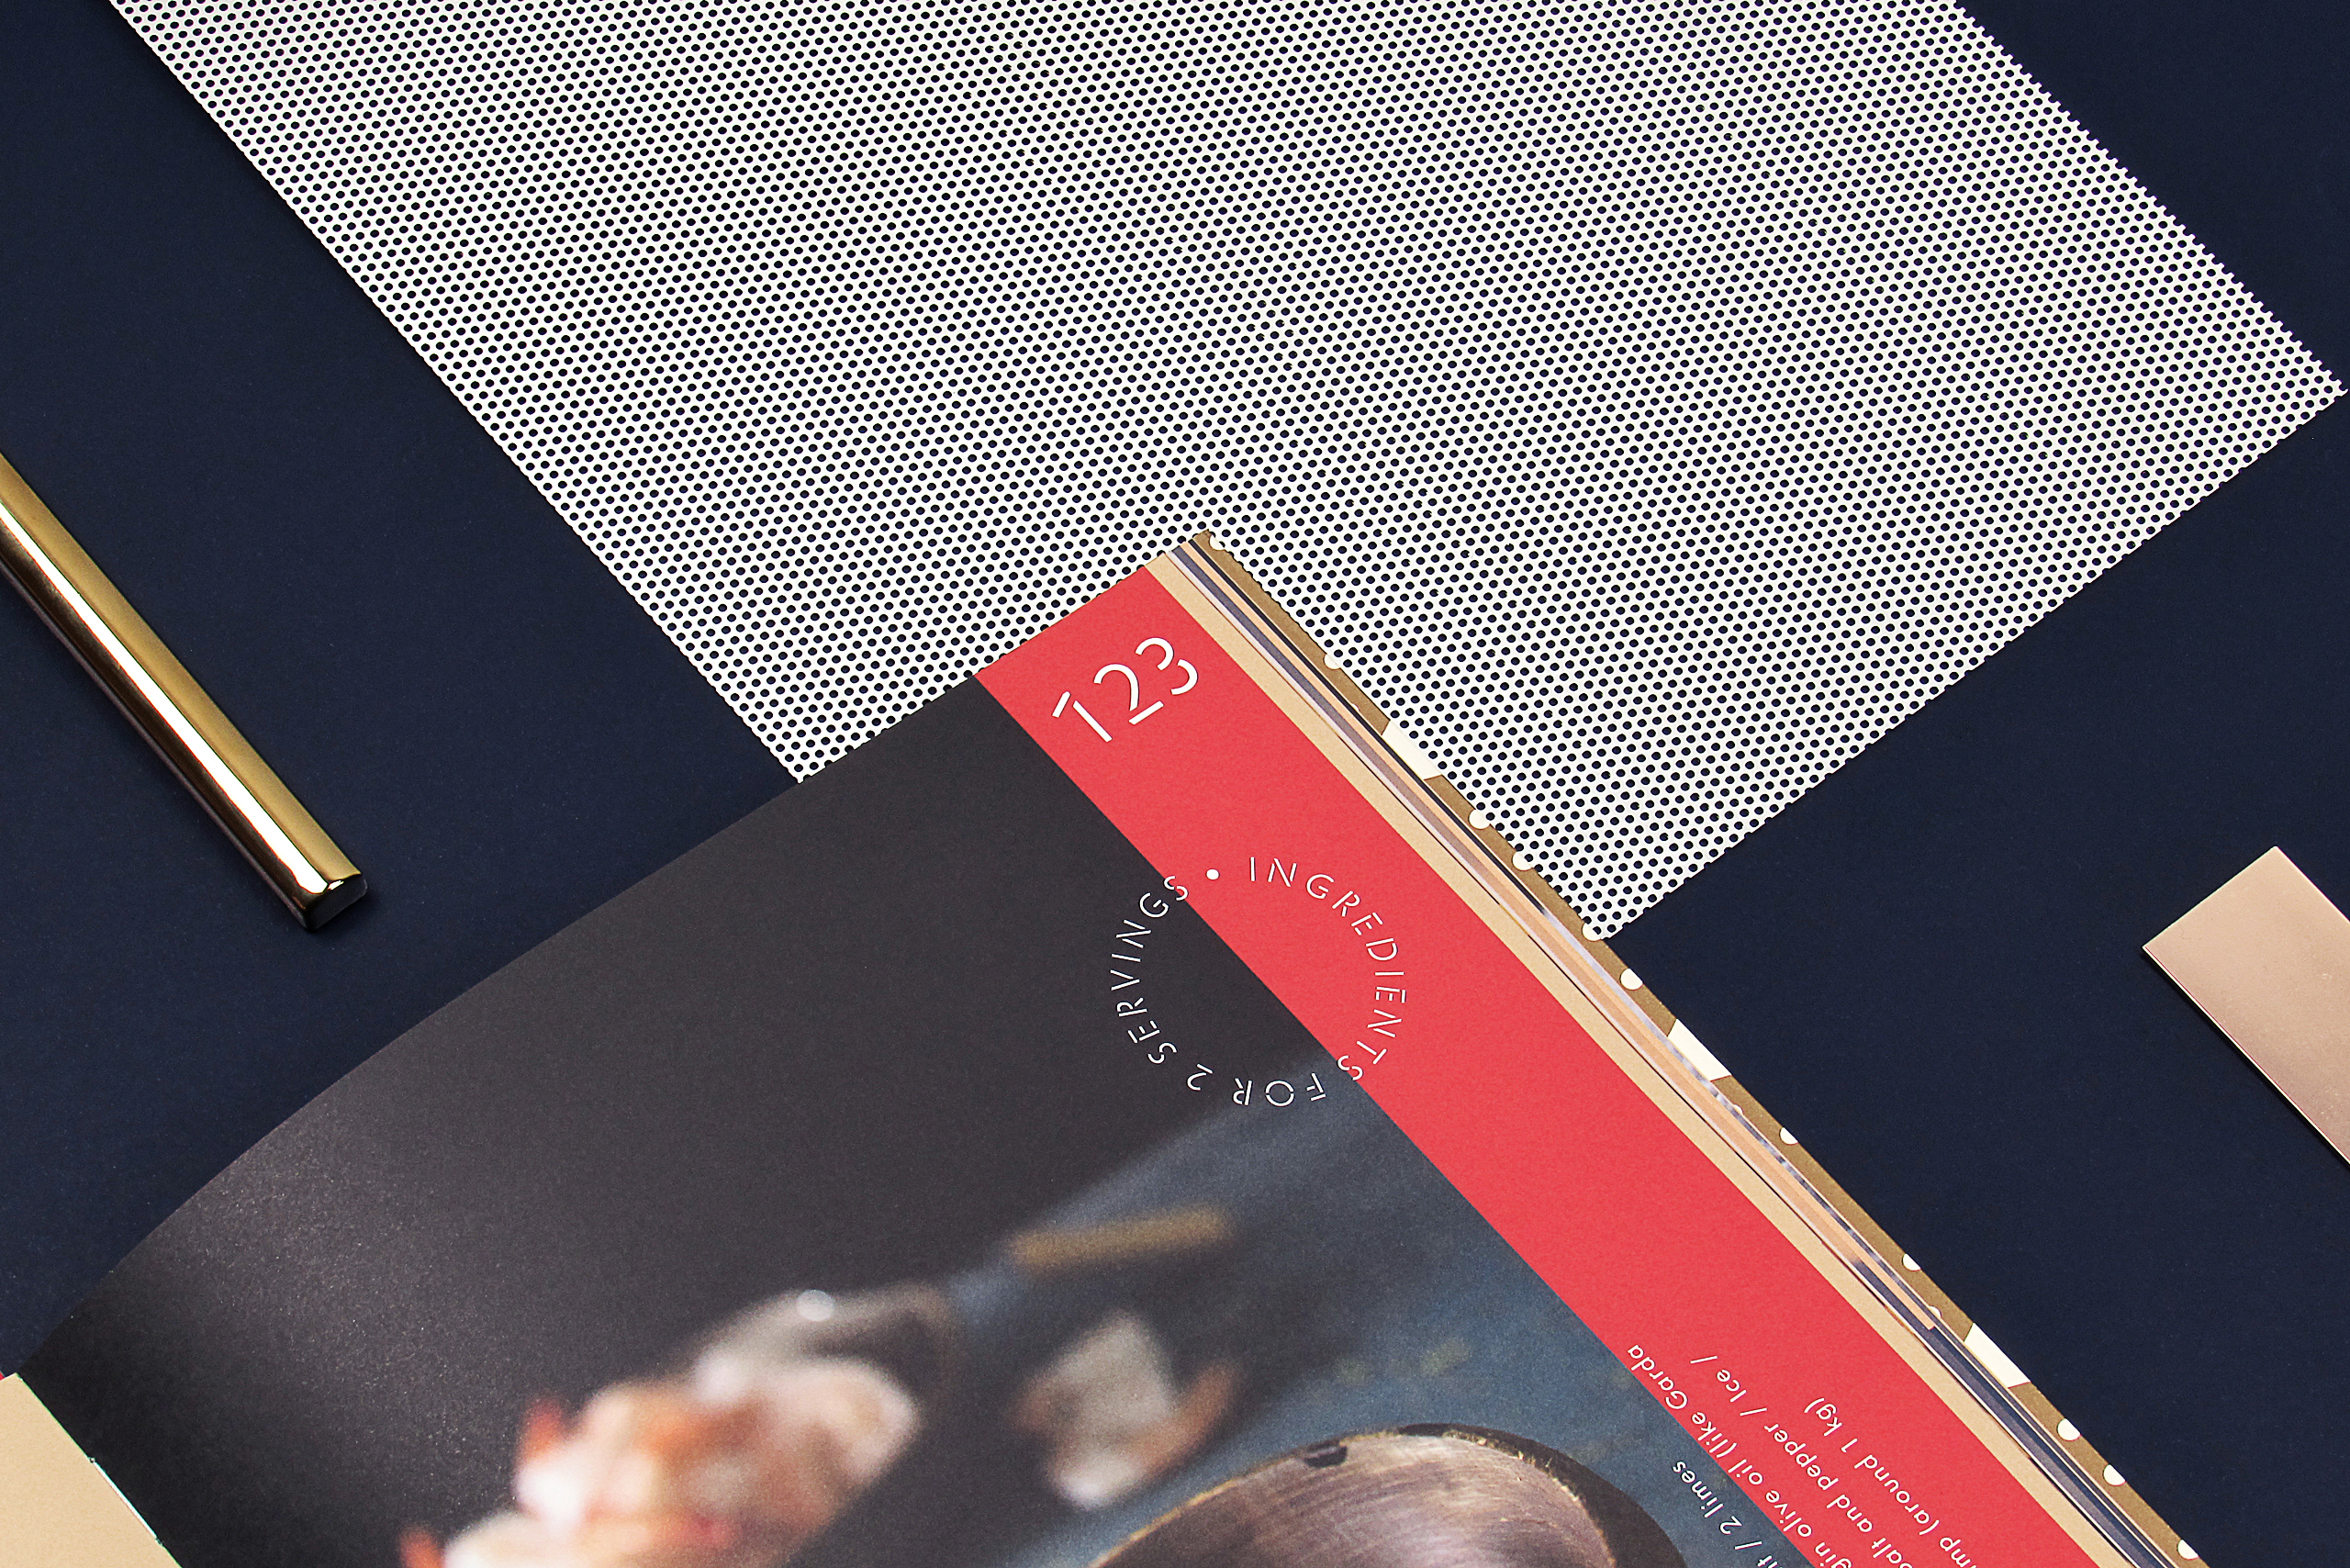 → Barilla Pasta World Championship / The book